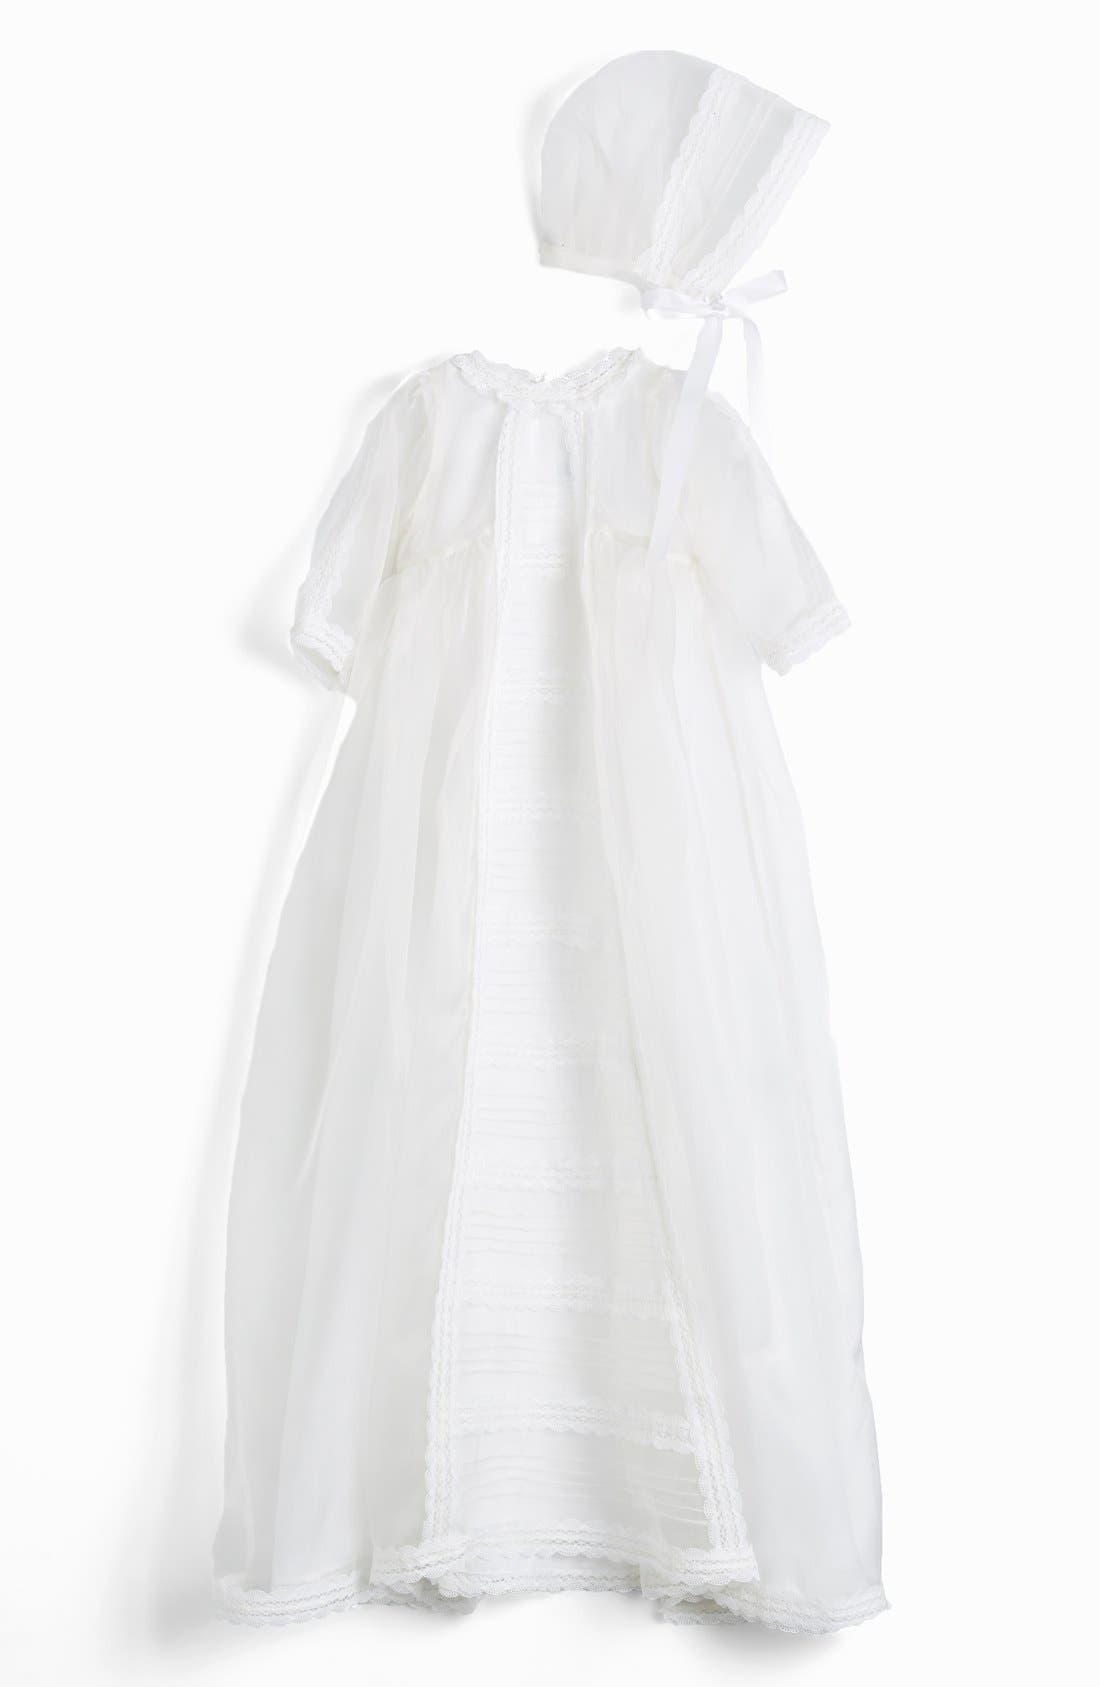 ISABEL GARRETON 'Caress' Silk Organza Christening Gown &